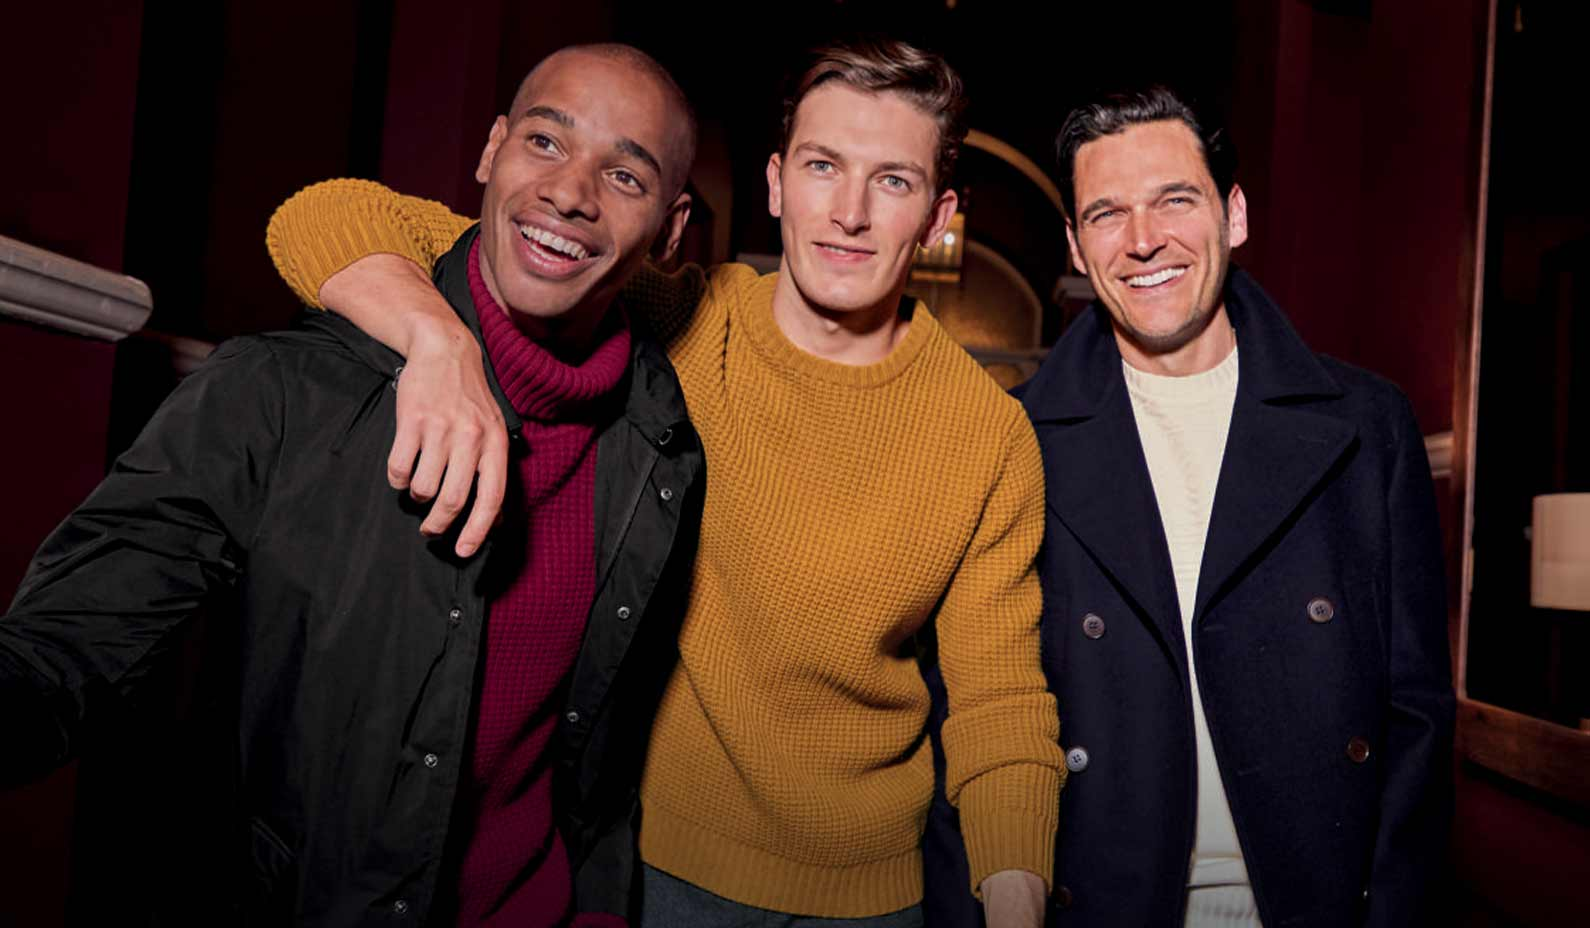 three men wearing chunky sweaters and coats and jackets